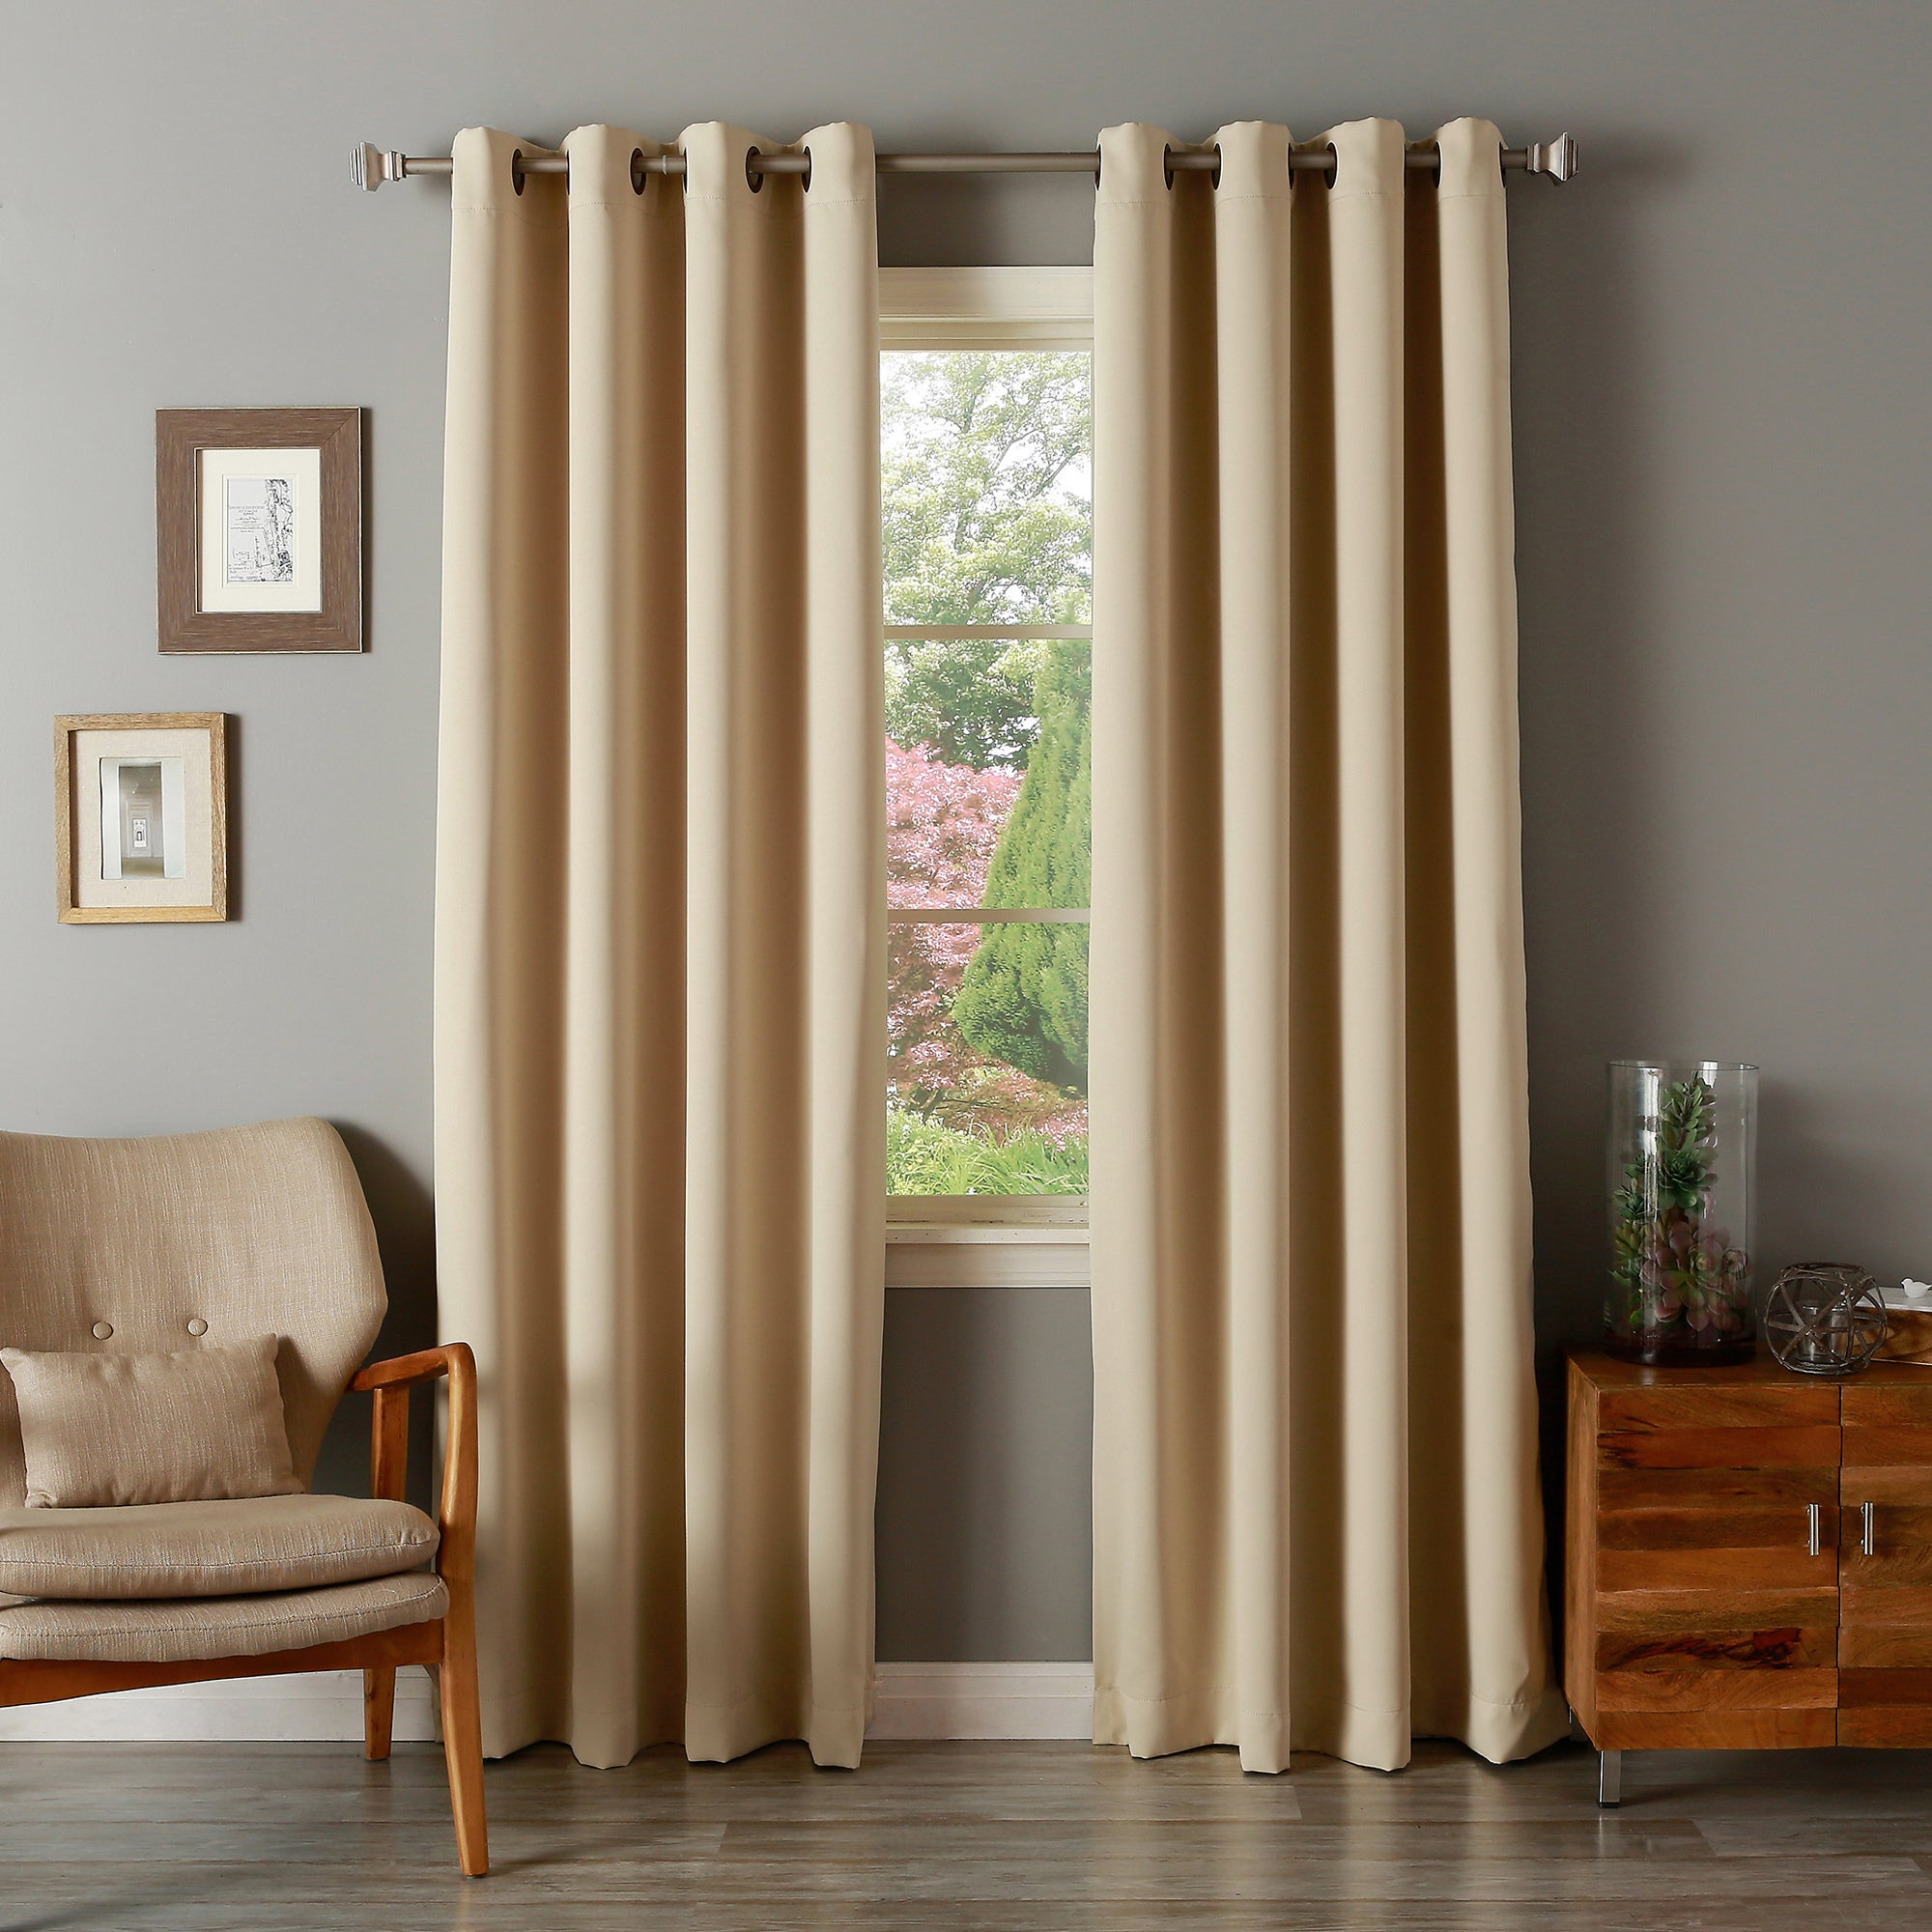 Fashionable Aurora Home Solid Grommet Top Thermal Insulated 108 Inch Blackout Curtain  Panel Pair Throughout Solid Grommet Top Curtain Panel Pairs (Gallery 11 of 20)